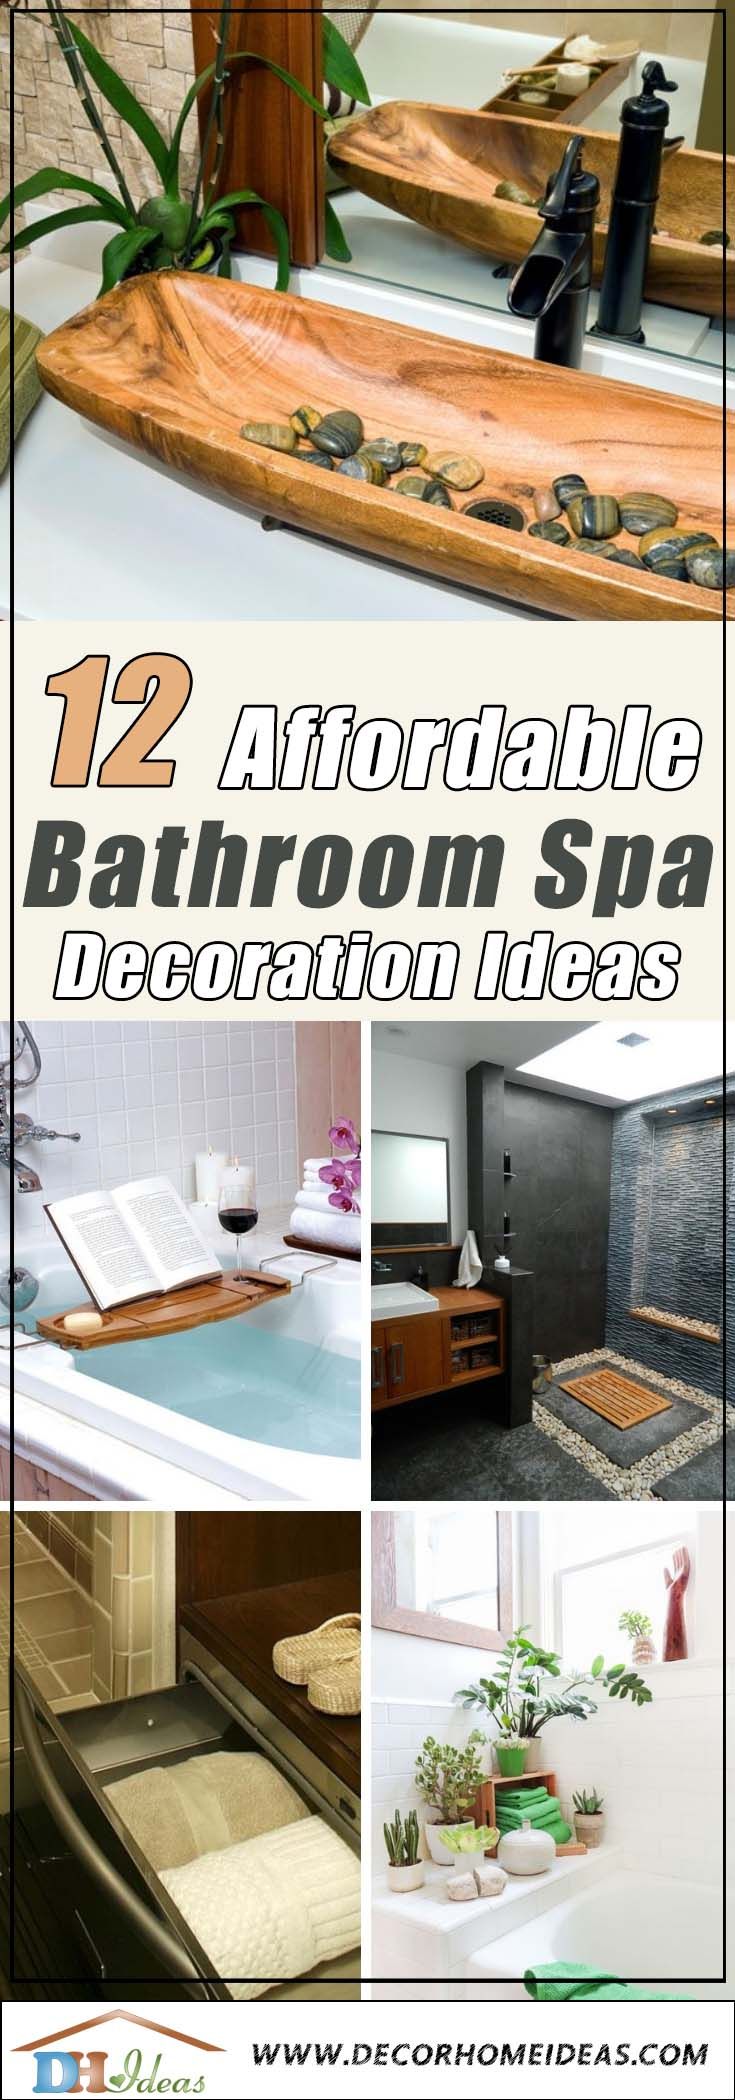 12 Affordable Decorating Ideas for Bathroom Spa | Make your own spa decoration at home with these ideas. #spadecor #bathroom #homespa #spahome #relaxhome #spa #homedecor #decoratingideas #spadesign #decorhomeideas